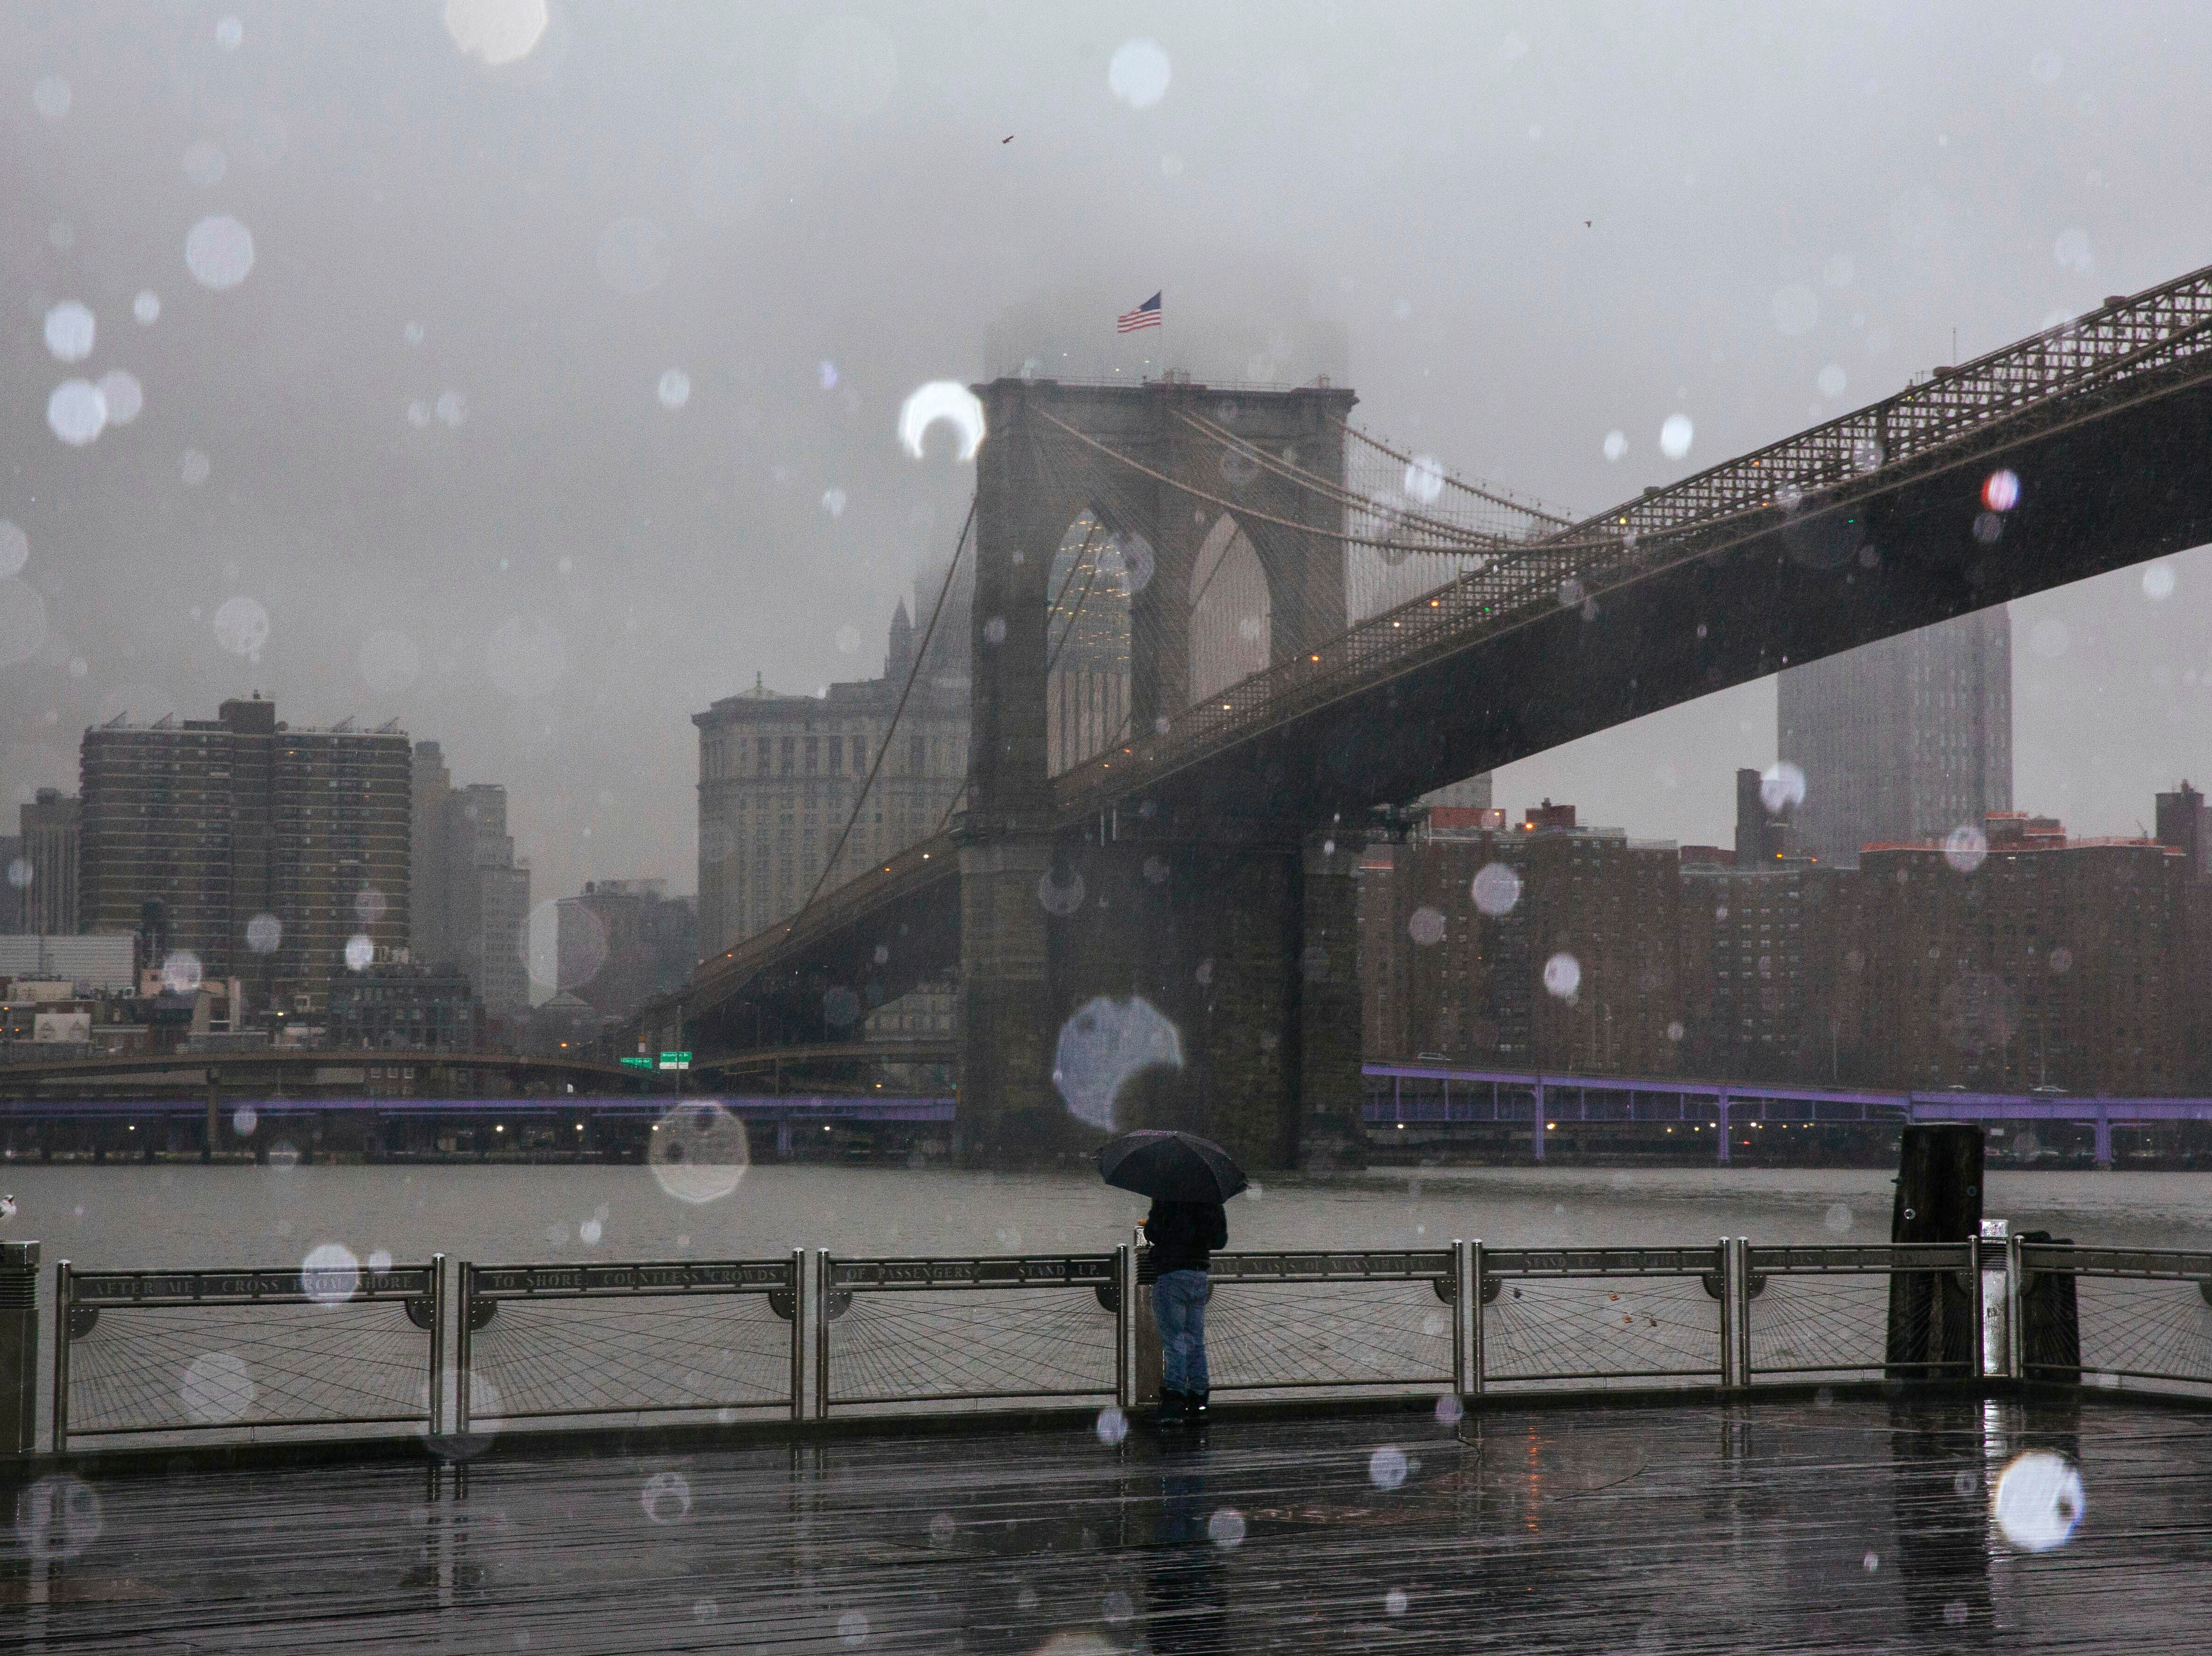 A man stands on the boardwalk at Brooklyn Bridge Park Sunday, Jan. 20, 2019, in New York. The National Weather Service said on Saturday that a dramatic drop in temperatures could turn the weekend's rainfall into ice before Monday. (AP Photo/Kevin Hagen). ORG XMIT: NYKH106